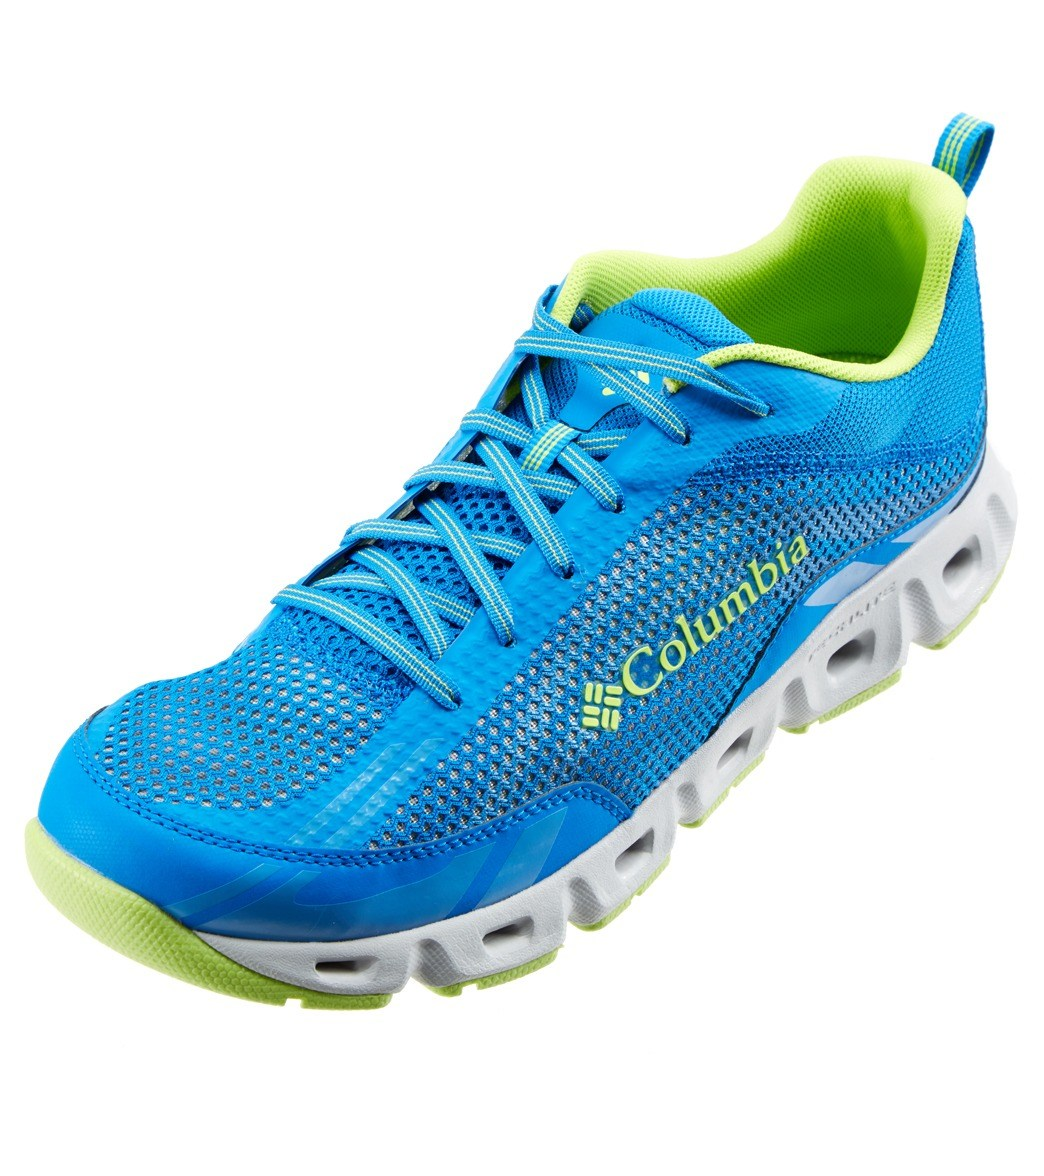 Columbia Men/'s Drainmaker IV Water Shoe Choose SZ//Color